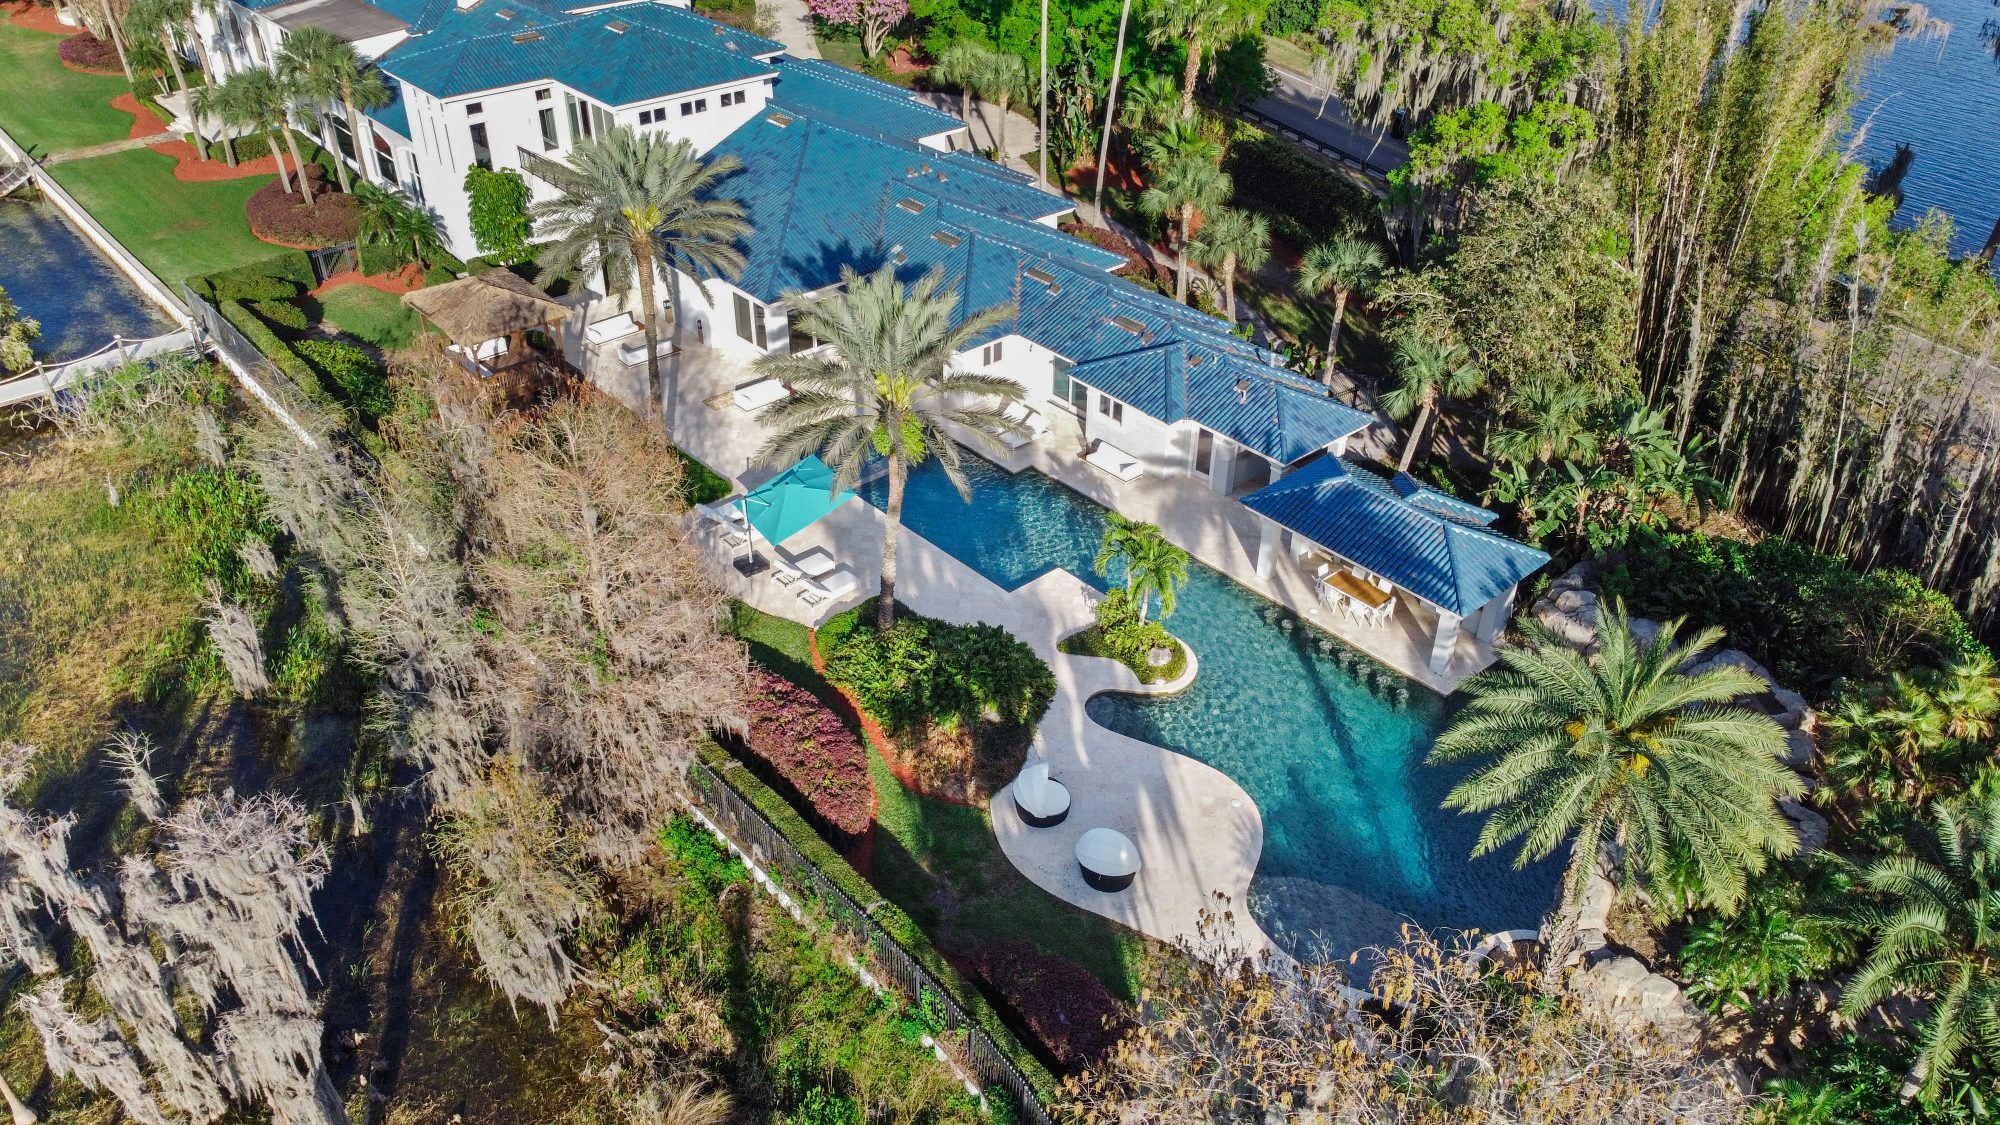 SHAQUILLE O'NEAL'S FLORIDA MANSION 11